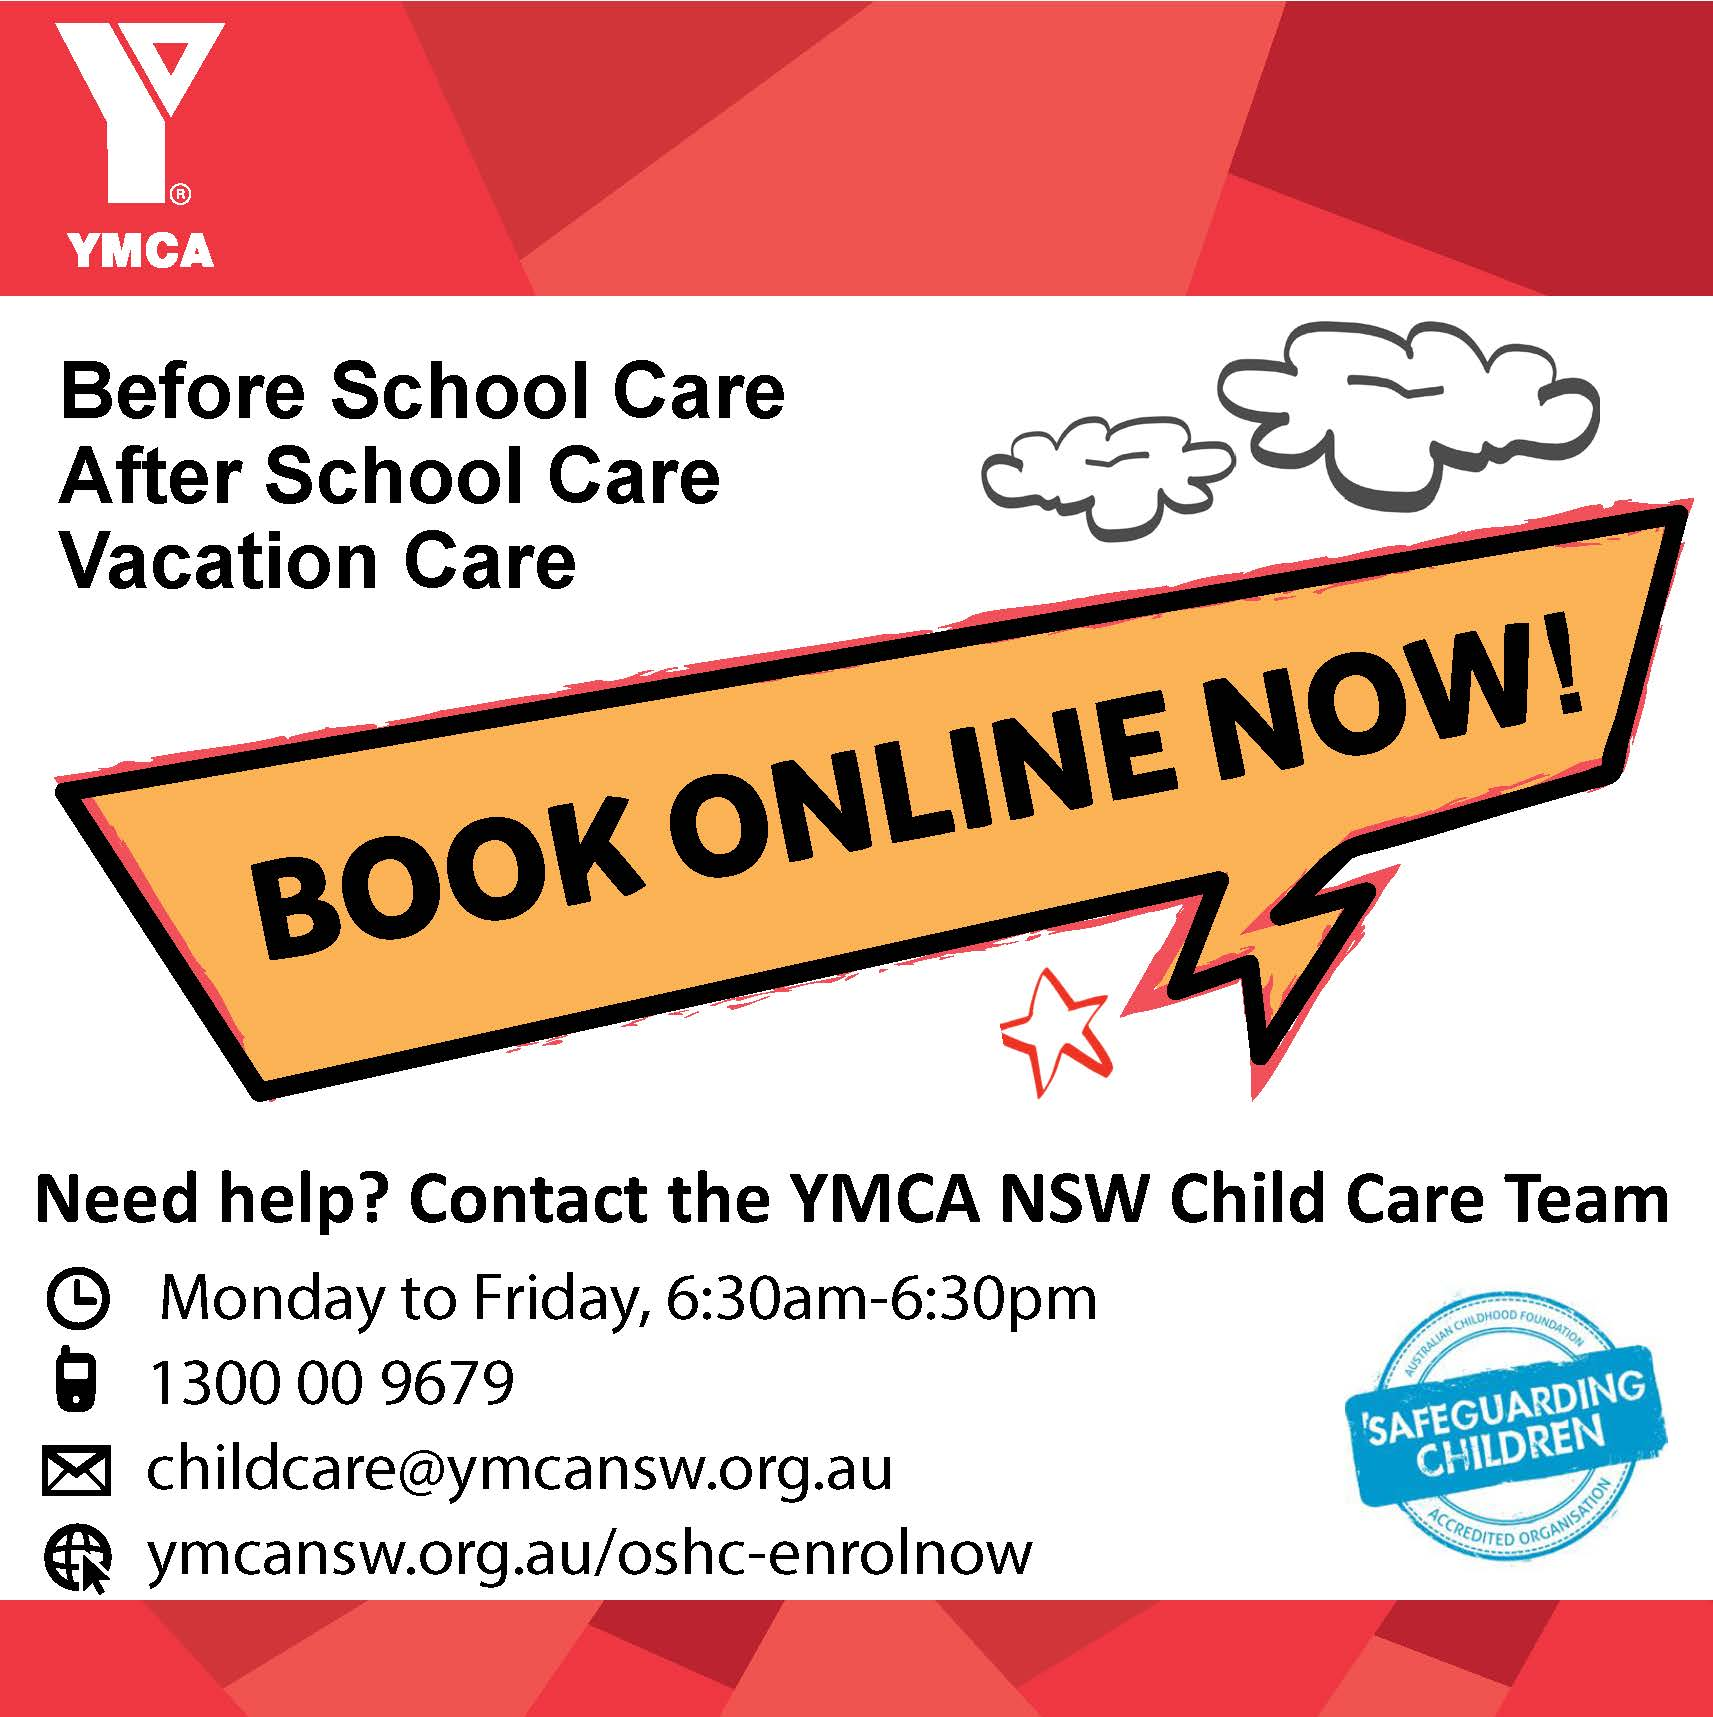 To enrol in OHSC phone 1300 00 9679